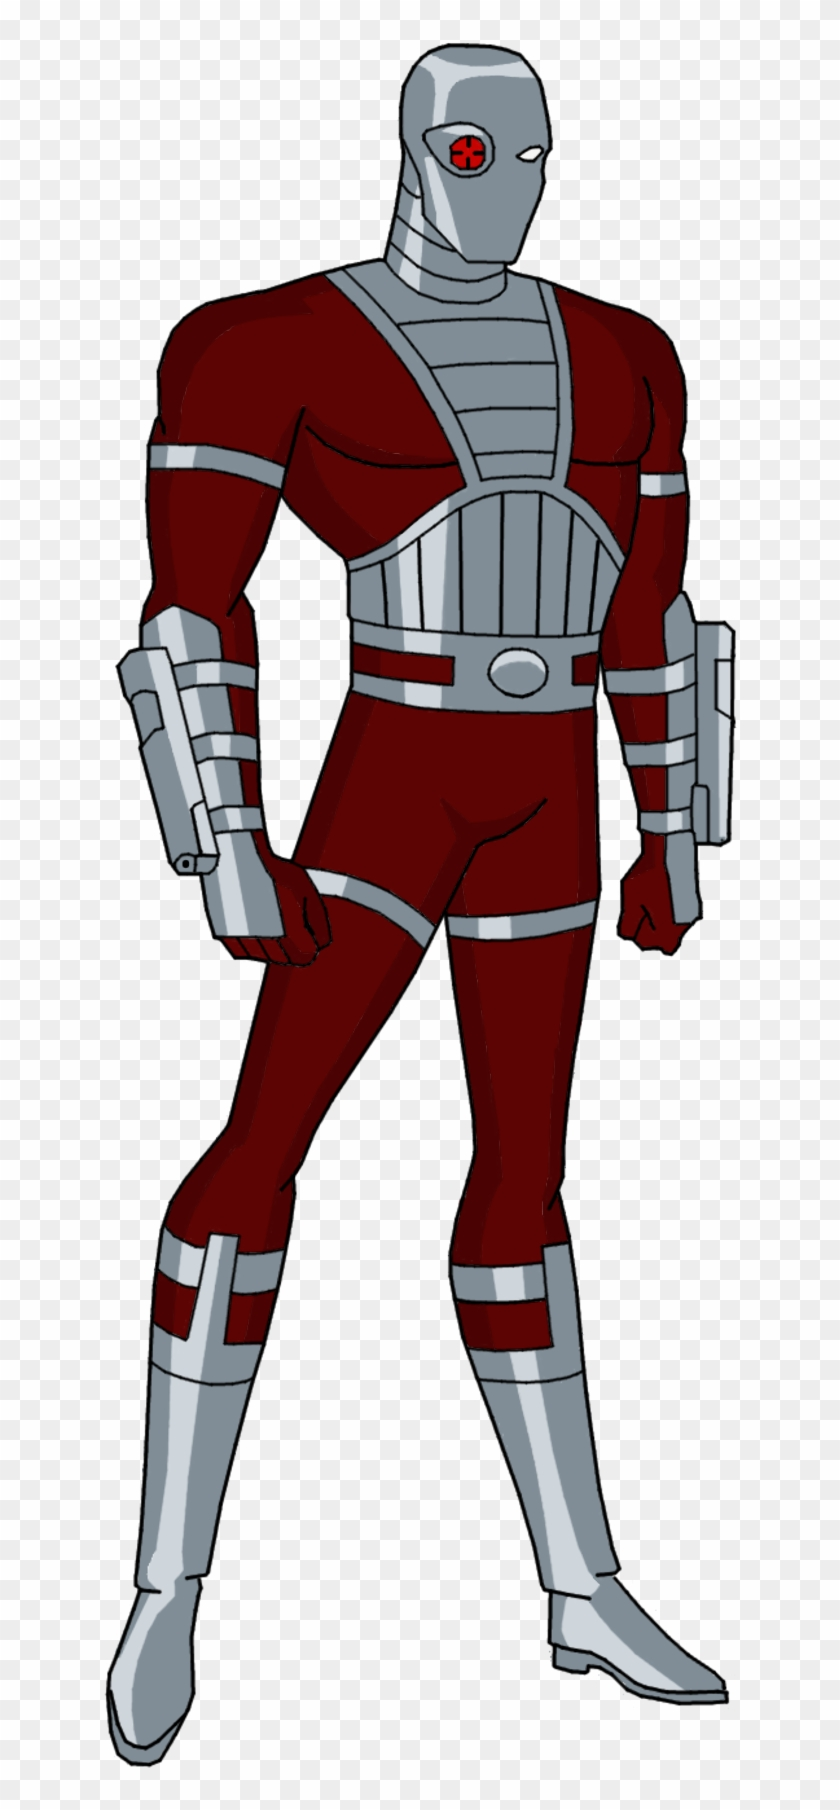 https://www.clipartmax.com/png/middle/245-2450194_deadshot-by-therealfb1-by-therealfb1-justice-league-unlimited-deadshot.png